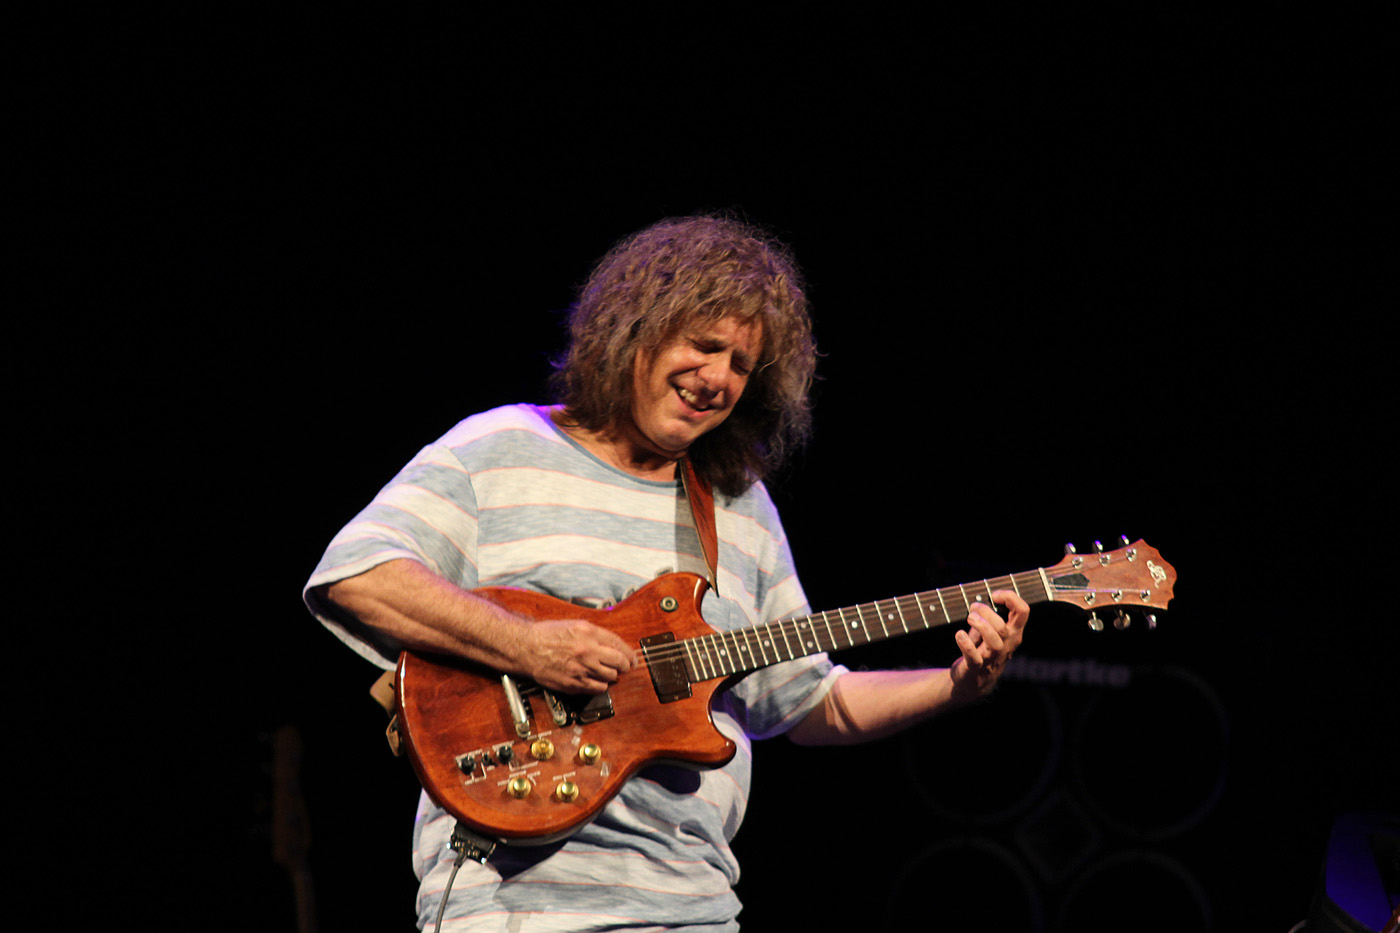 Ravenna Jazz 2017 - Pat Metheny